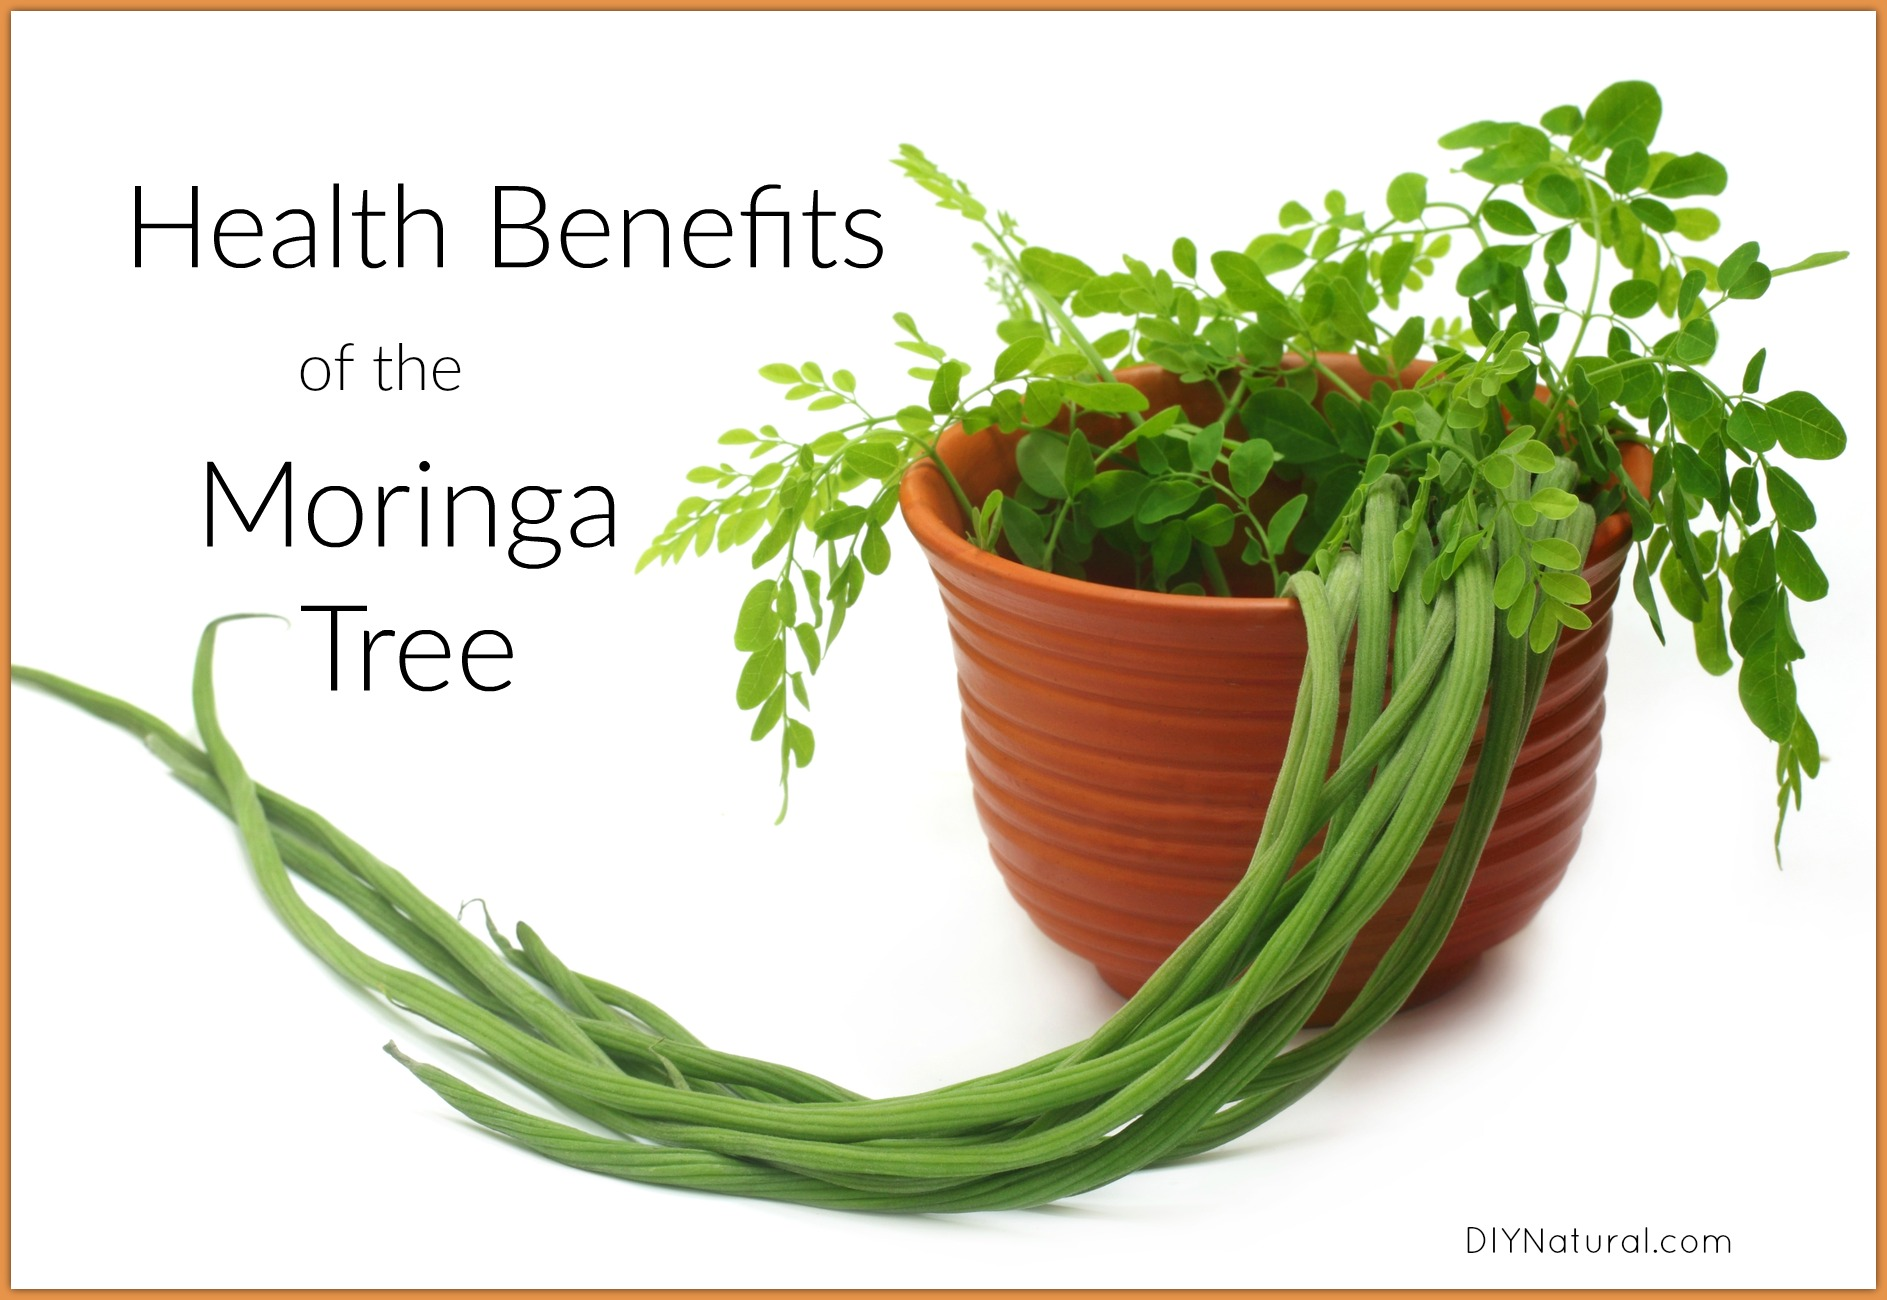 Health Benefits of Moringa and Ways to Use the Tree